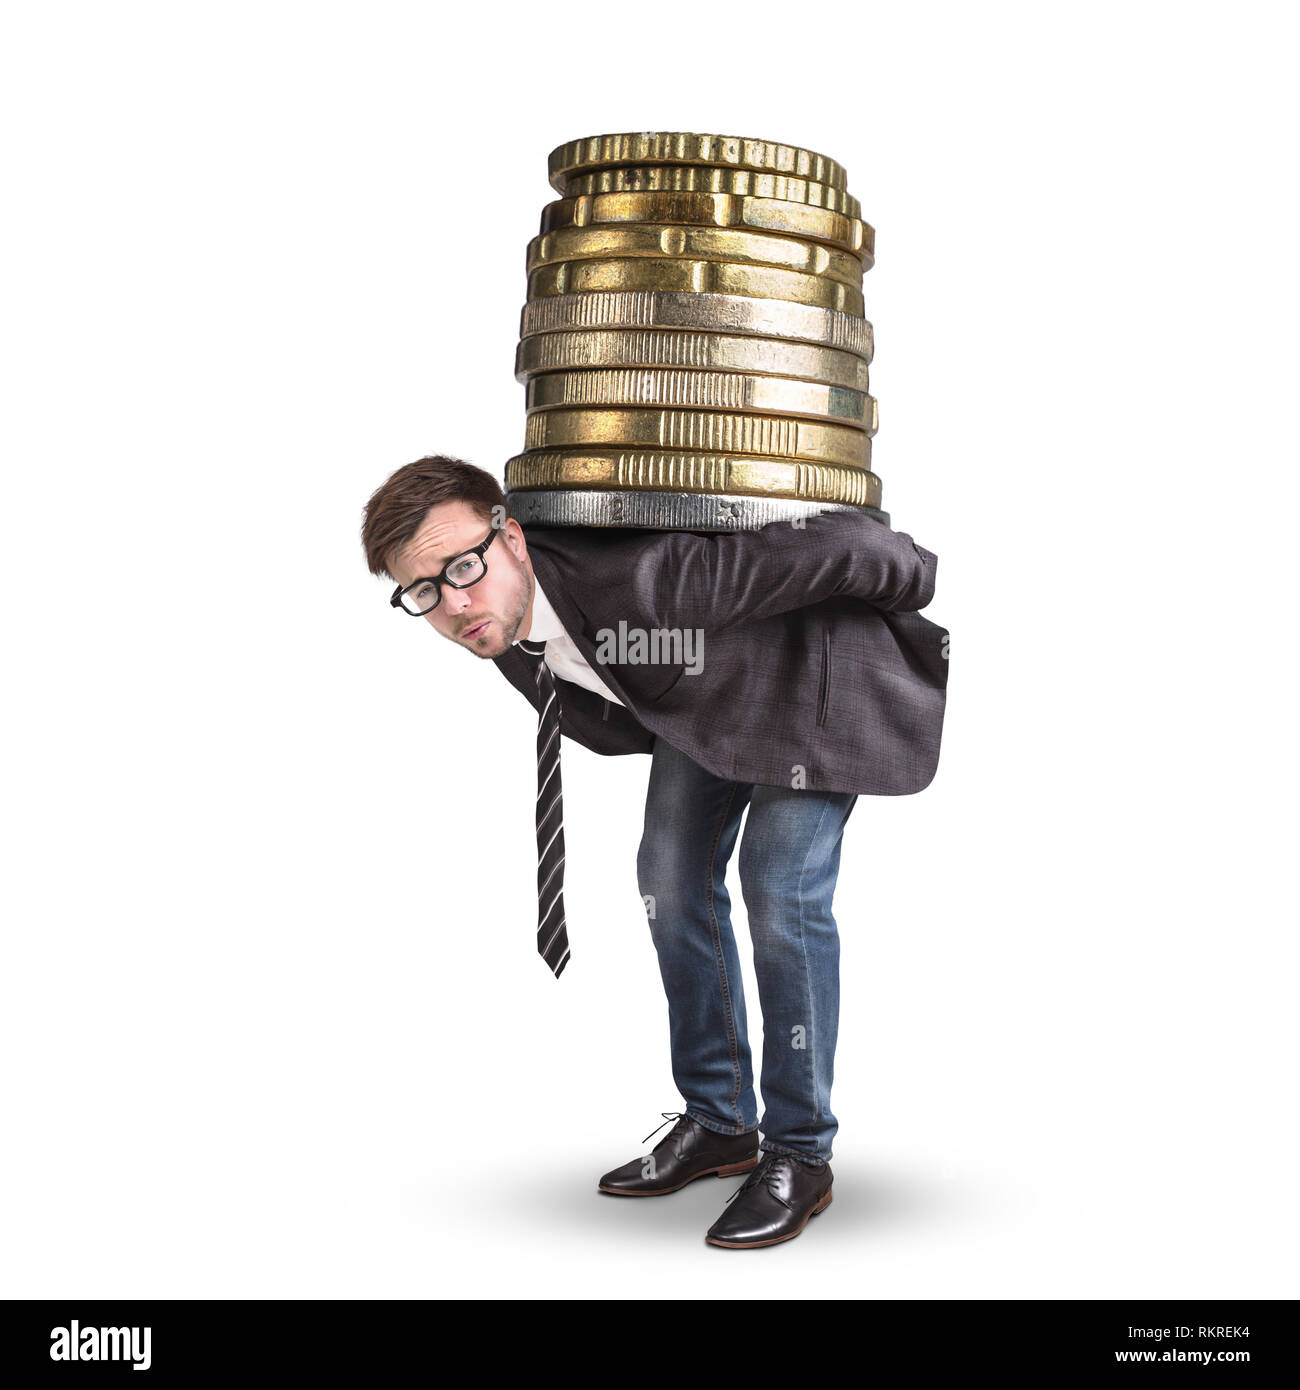 Businessman carrying a giant stack of coins on his back - Stock Image